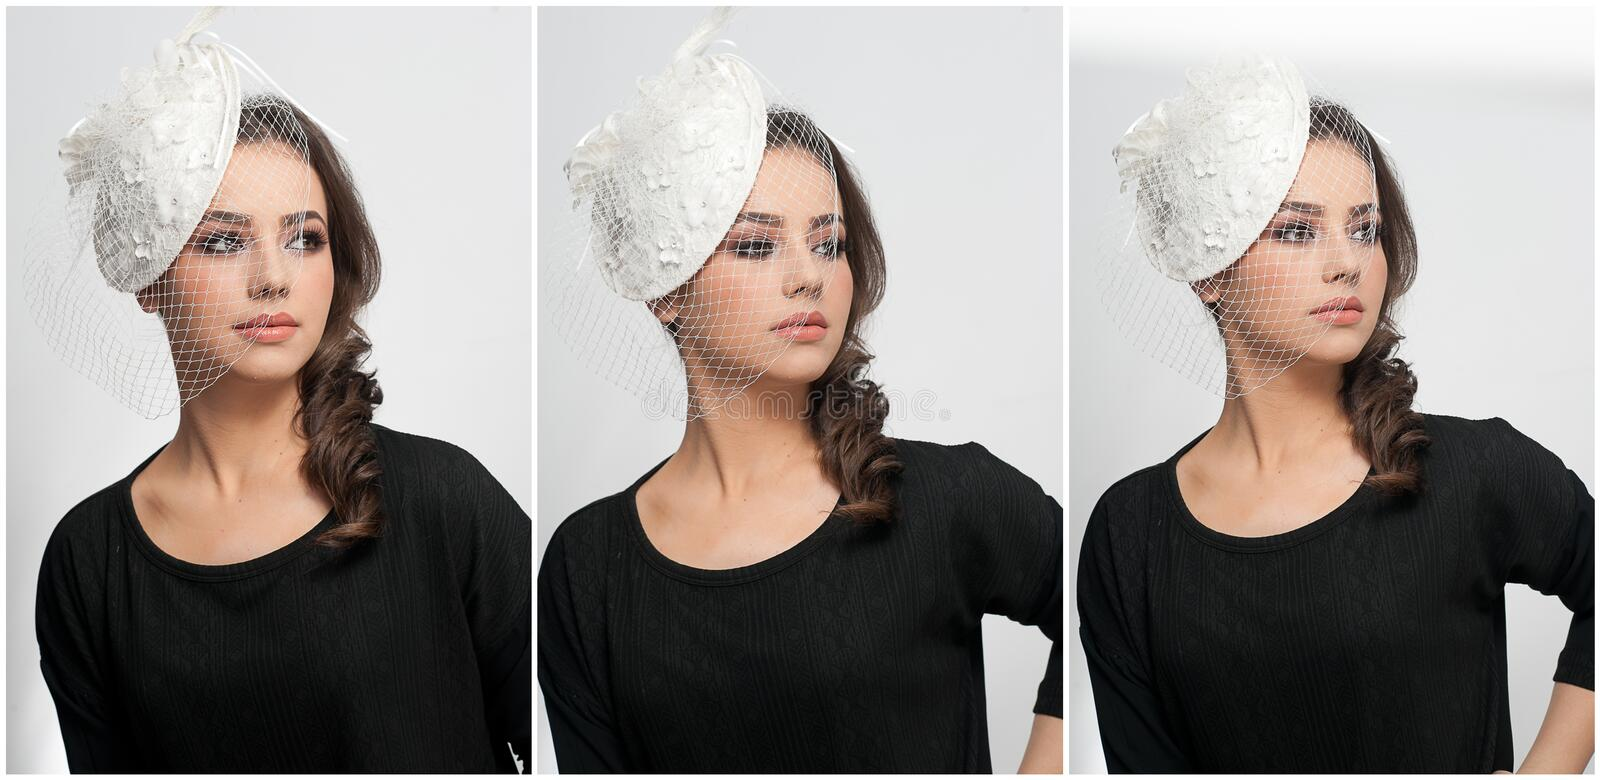 Hairstyle and make up - beautiful young girl art portrait. Cute brunette with white cap and veil, studio shot. Attractive female stock image